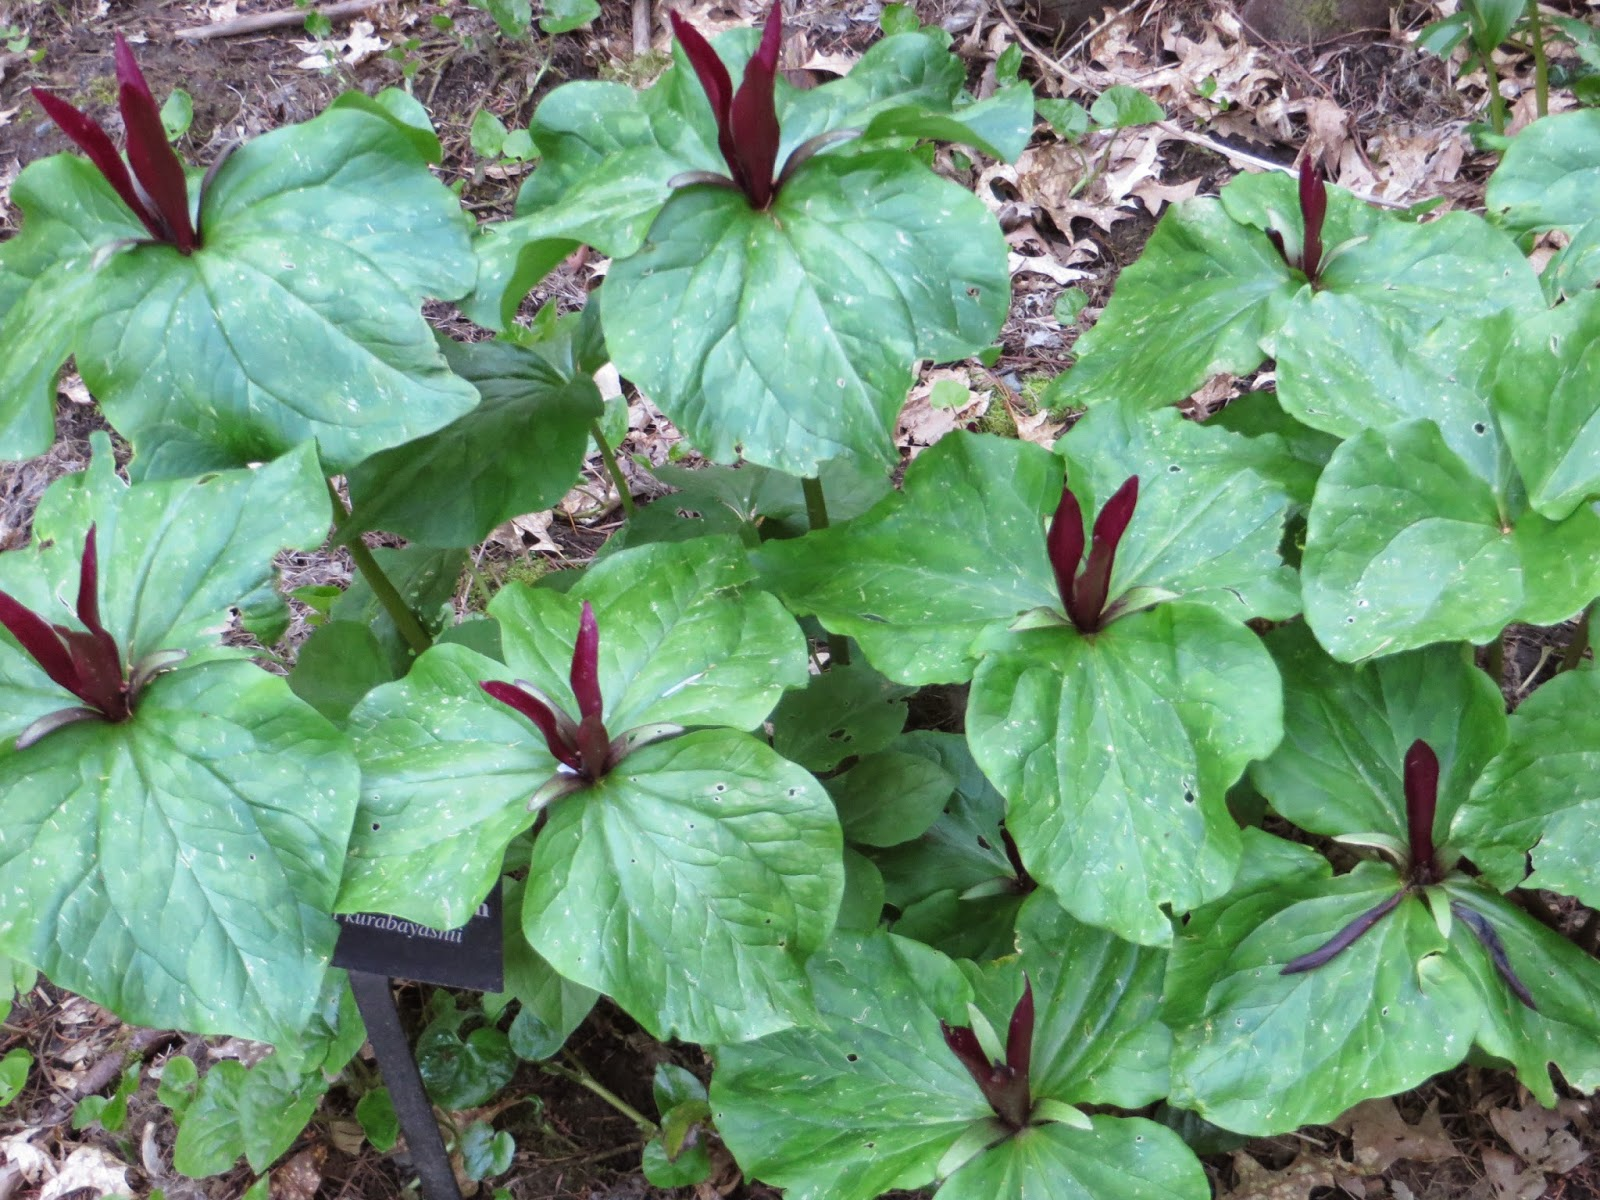 Native Plants To Oregon Part - 21: The Following Nurseries All Specialize Or Carry Native Plants: Echo Valley  Natives In Oregon City, Humble Roots Farm And Nursery In Mosier, Oregon  (they ...